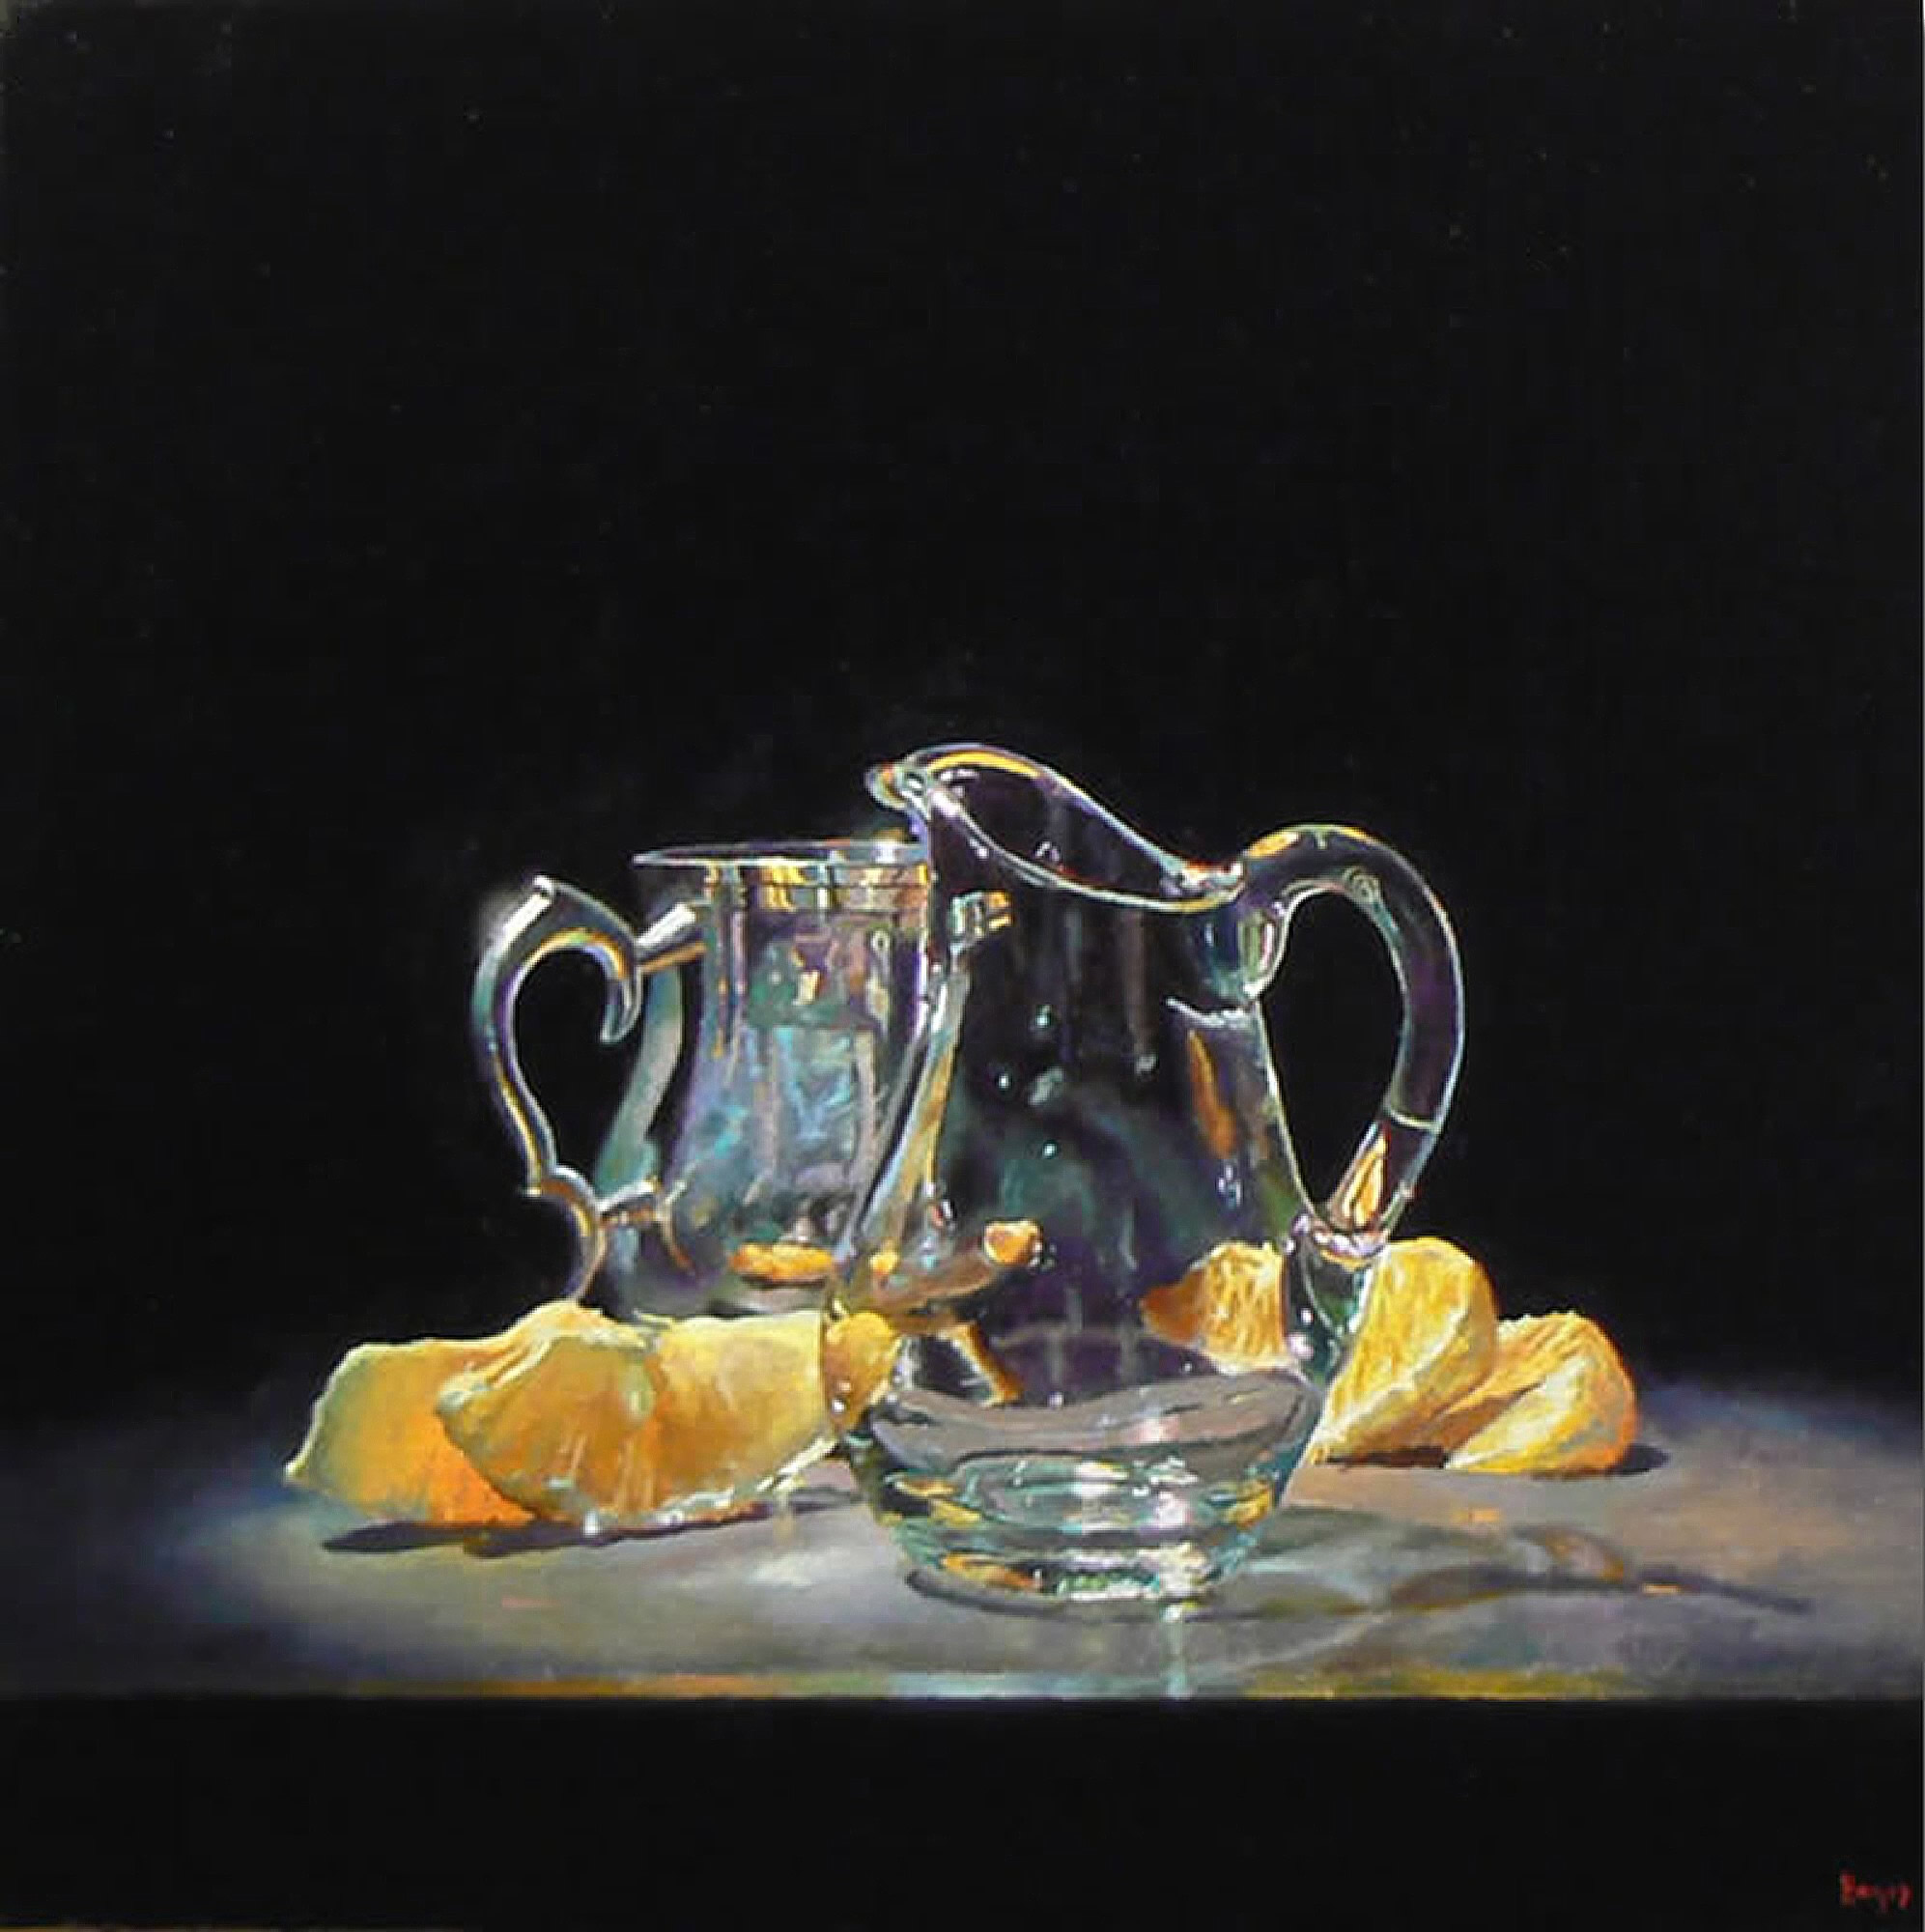 Silver, Glass, and Oranges